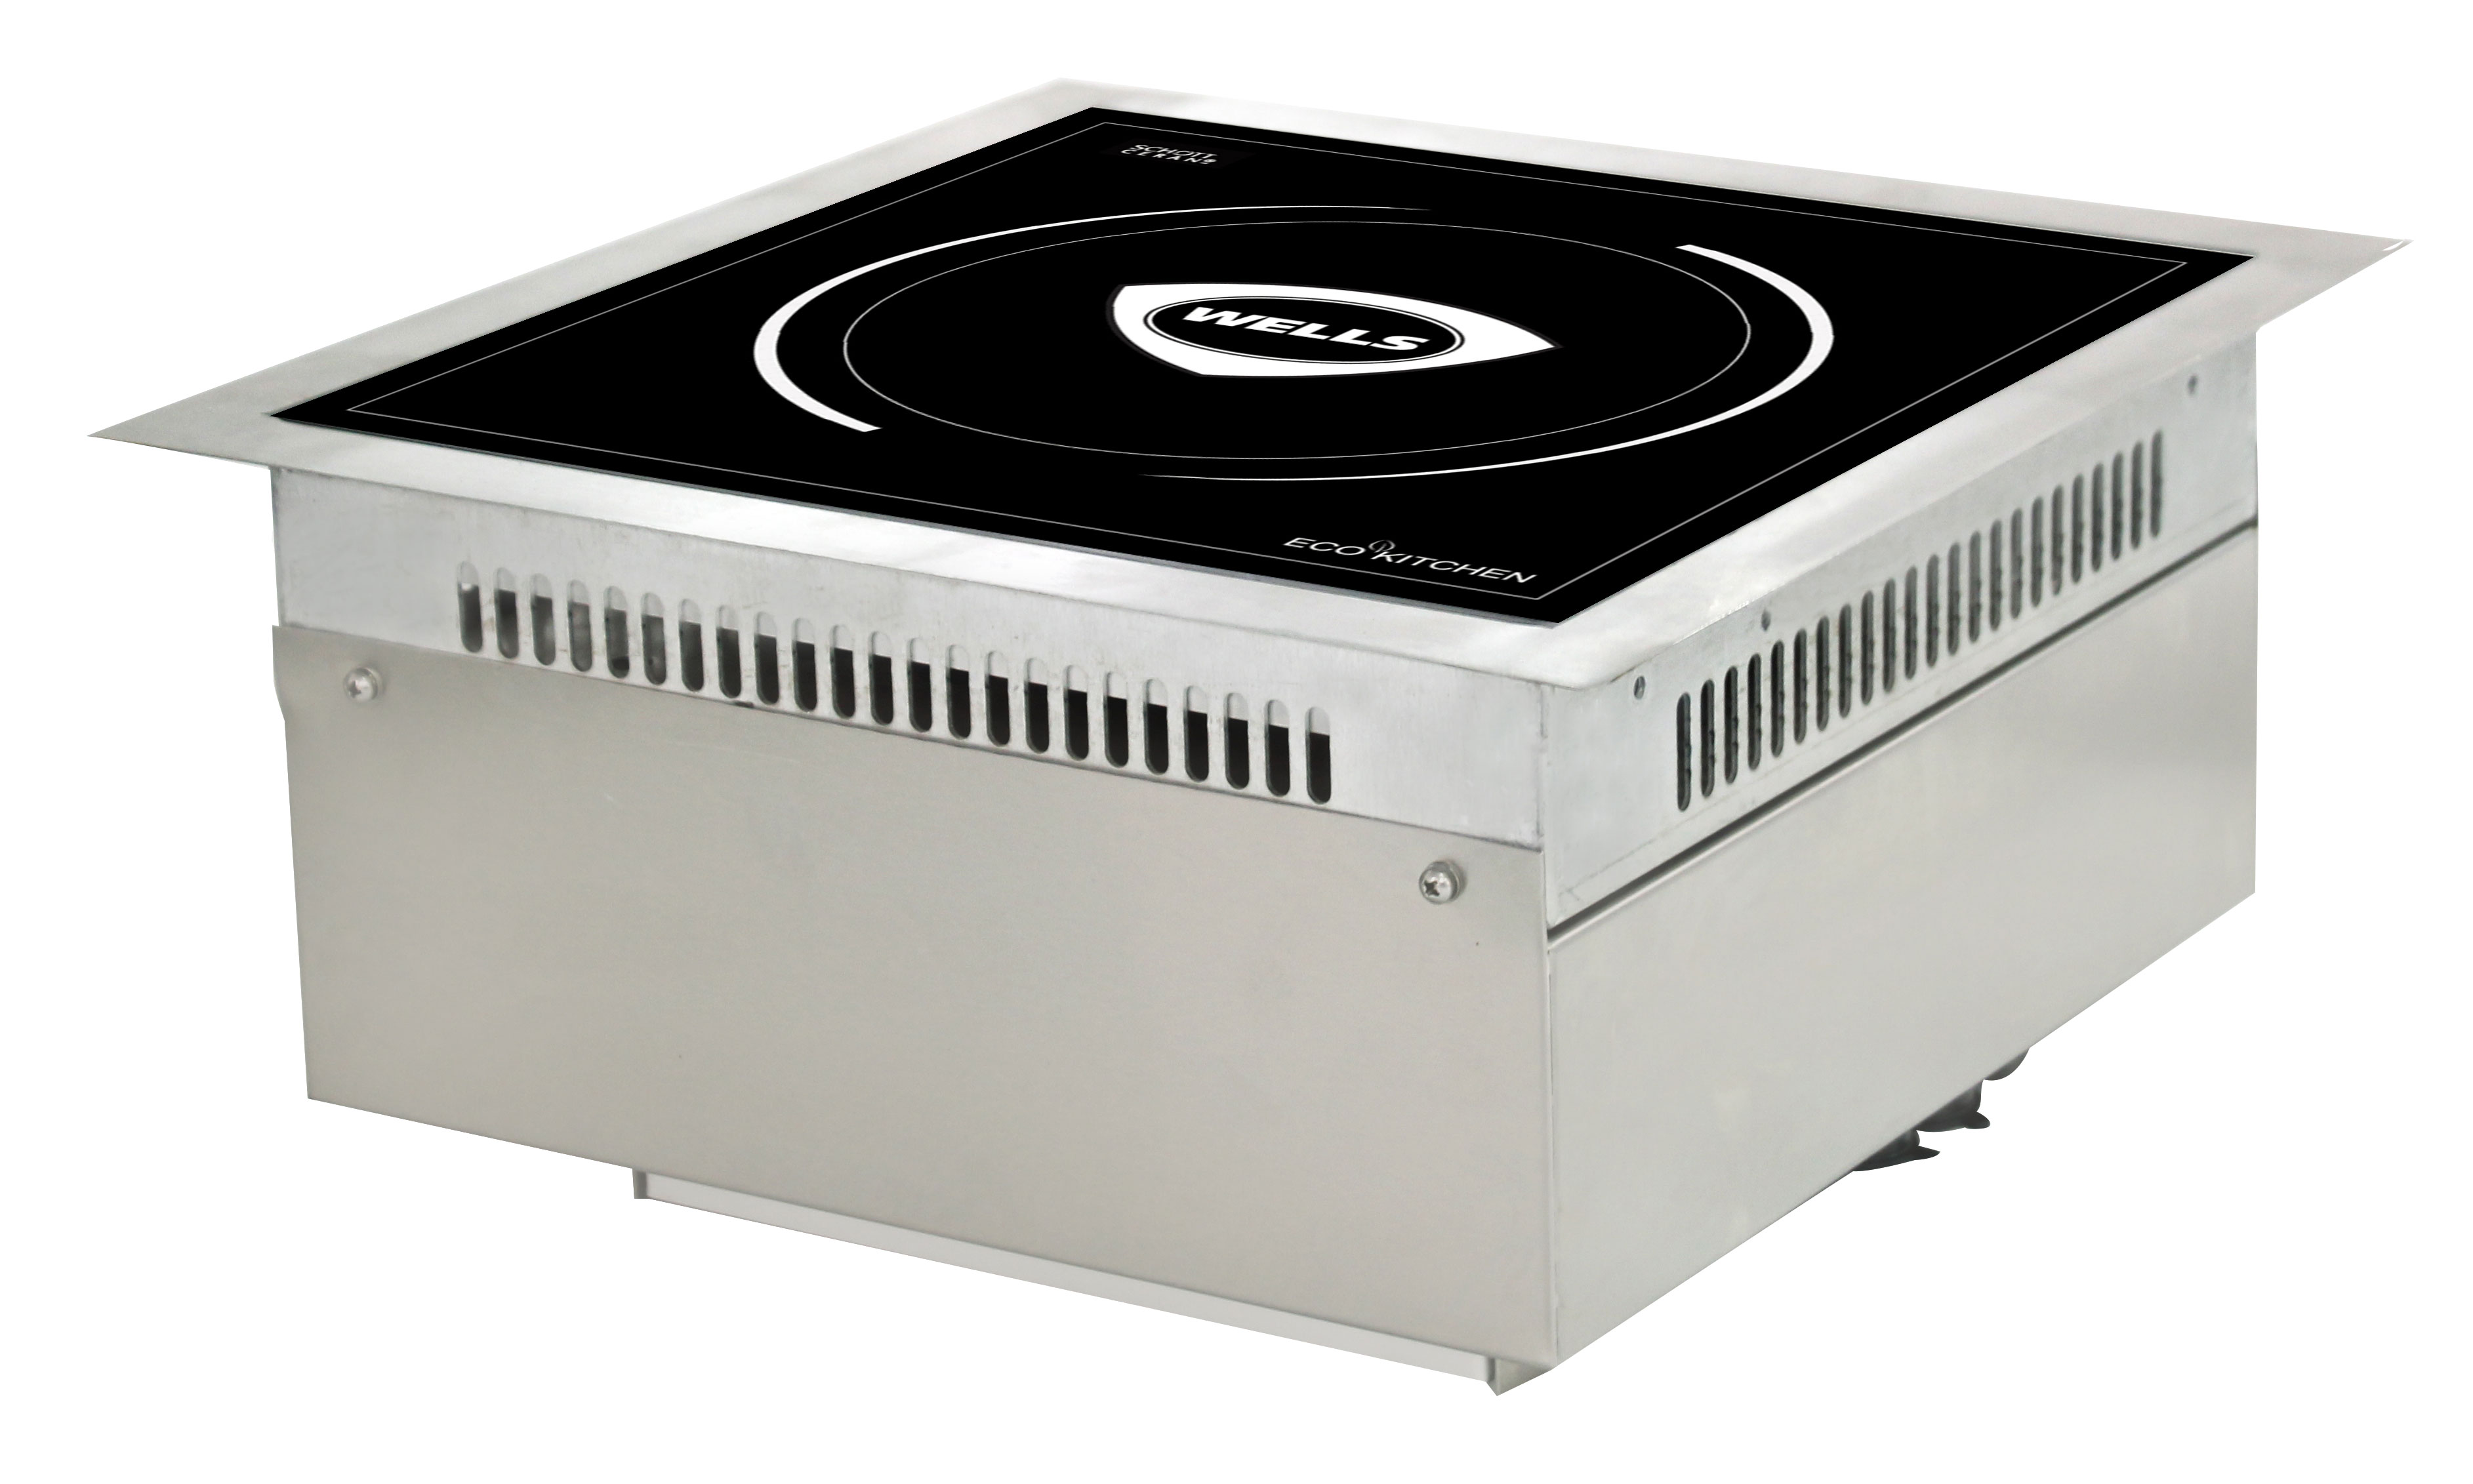 Wells ISDI35 induction range, built-in / drop-in